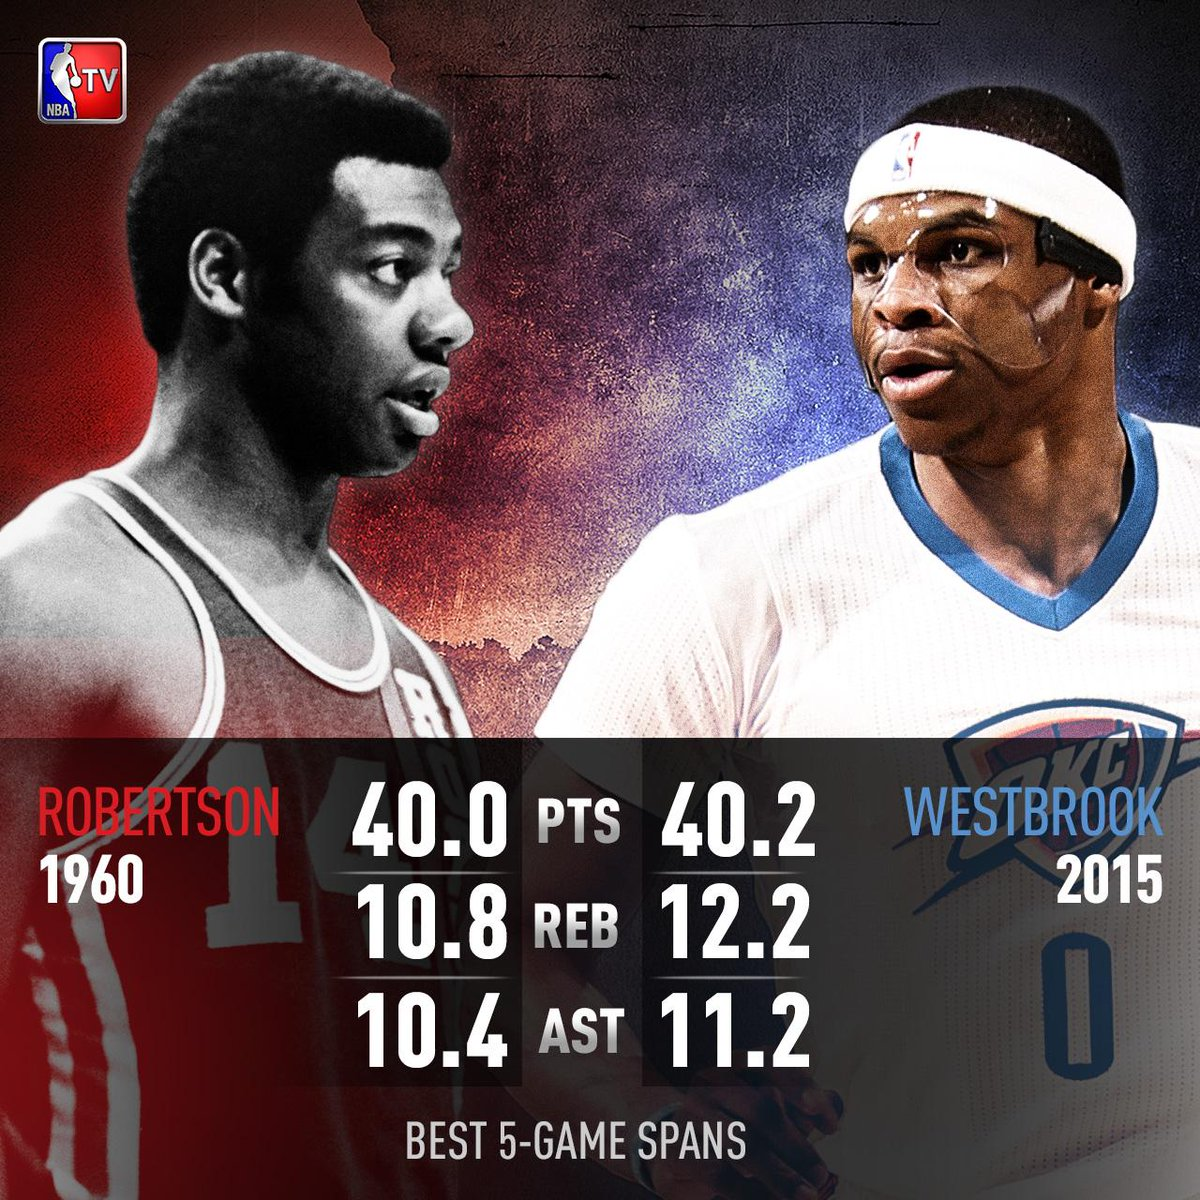 The big r russwest44 has matched oscar robertson with one of the